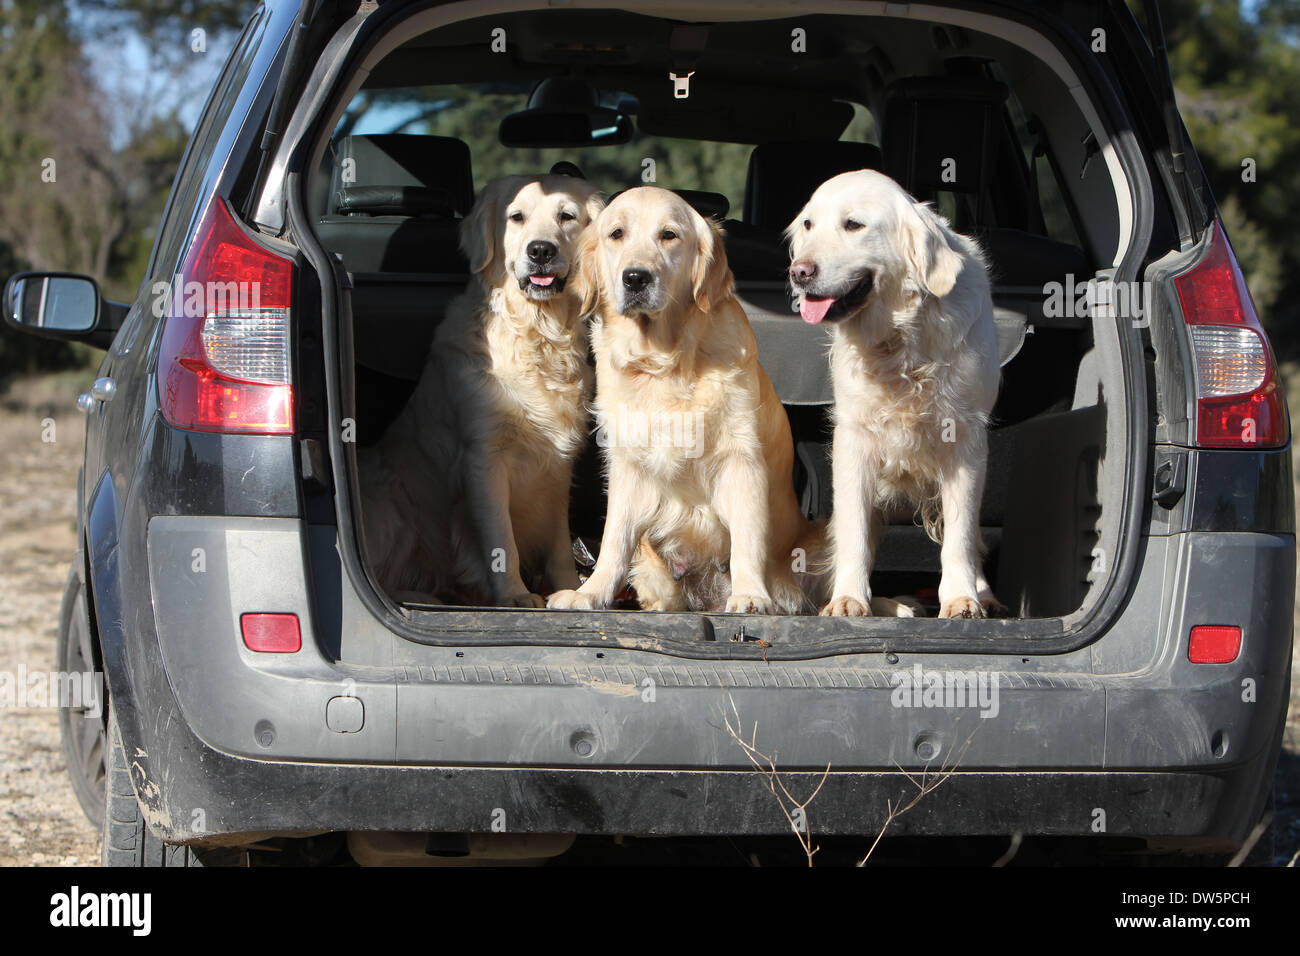 Dog Golden Retriever / three adults in the trunk of the car - Stock Image